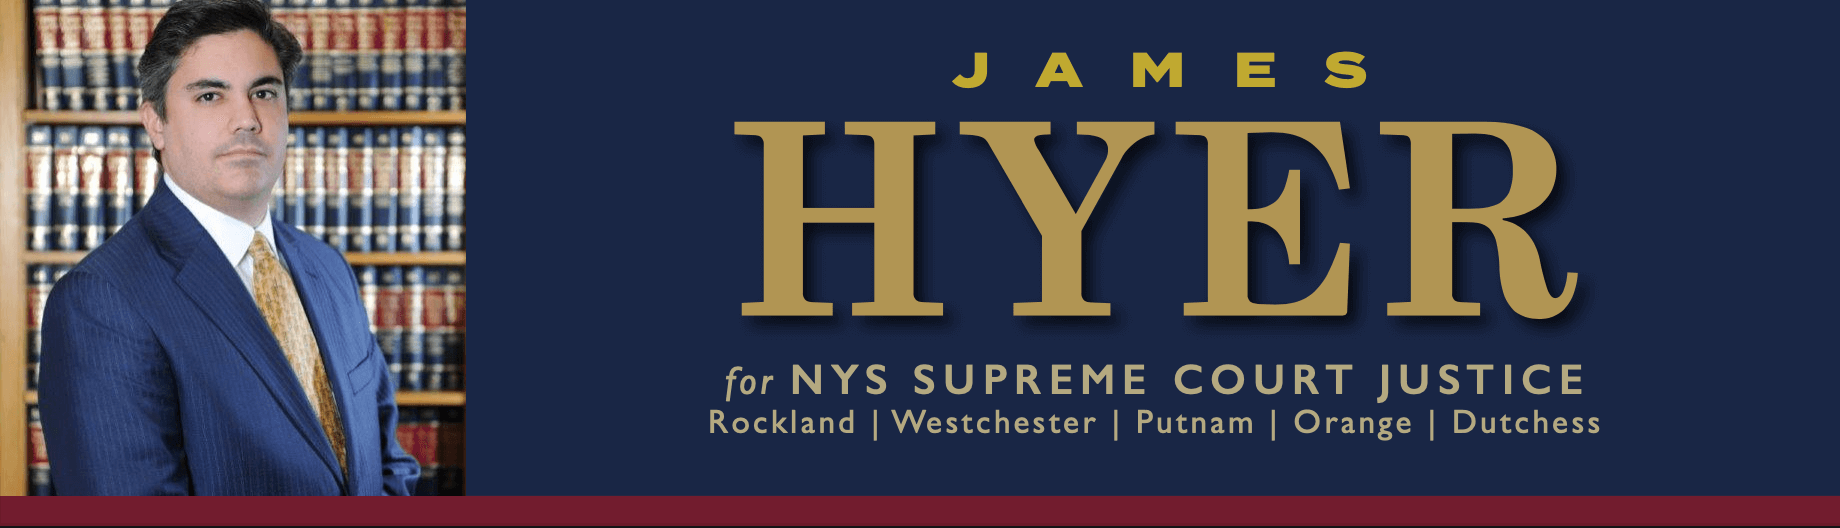 James Hyer for NYS Supreme Court Justice Large Logo Banner